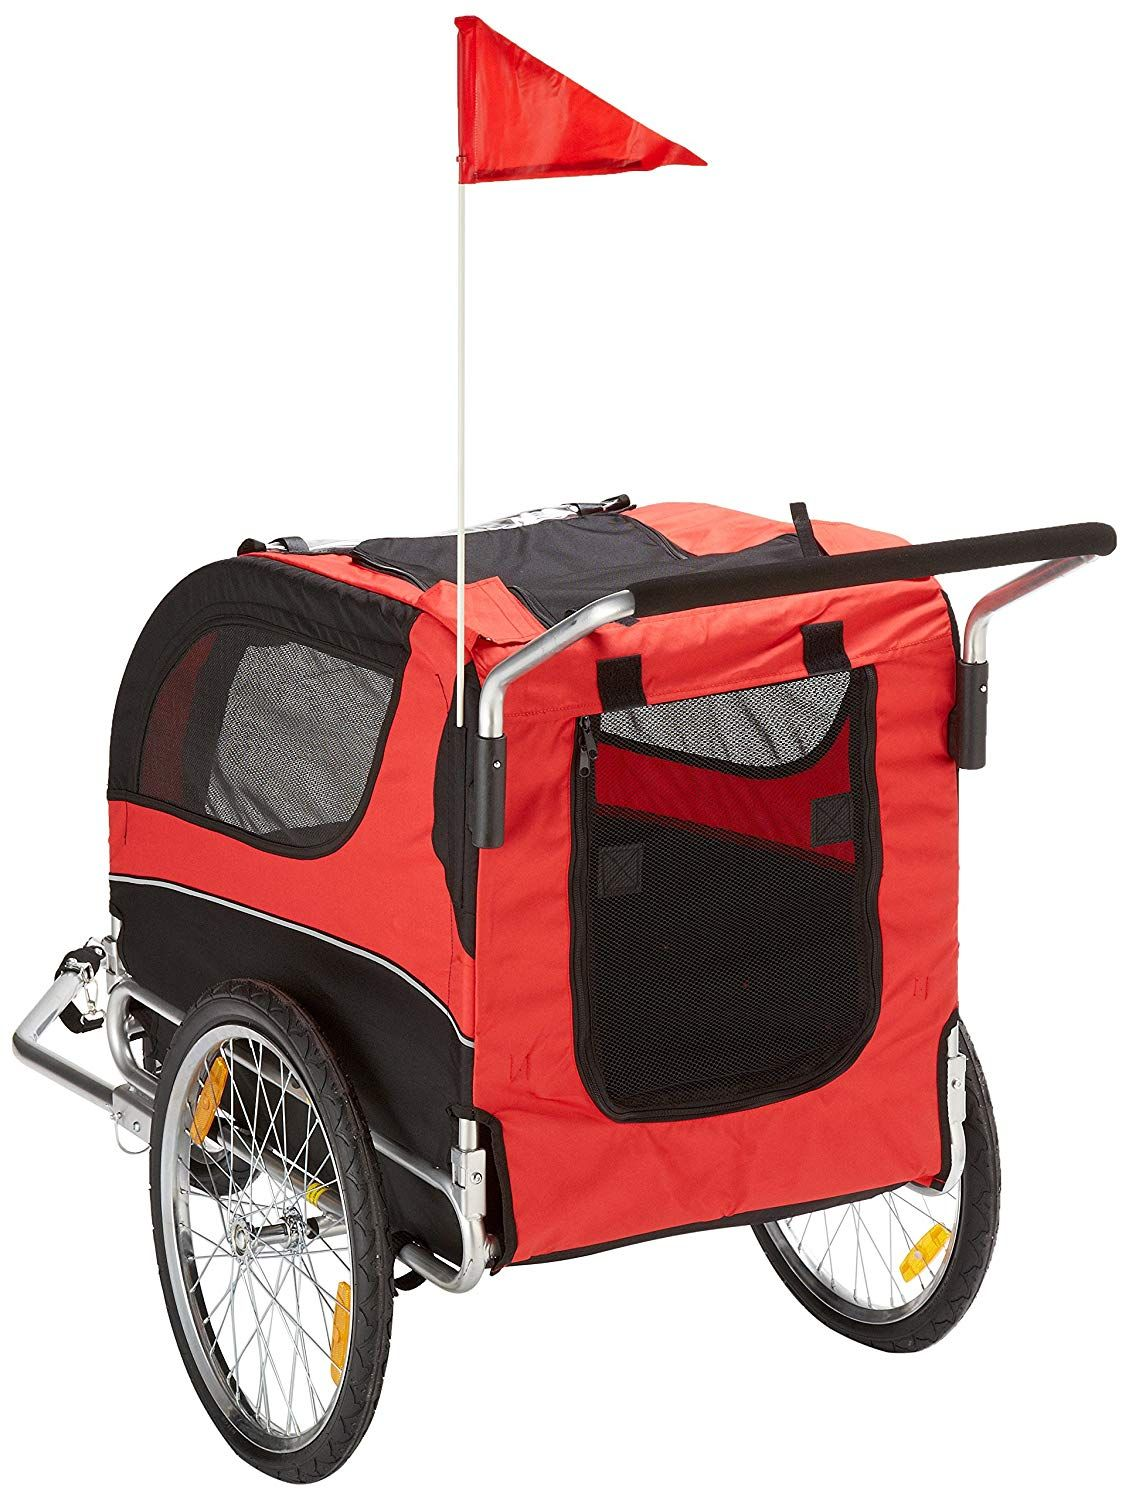 MDOG2 MK0291 Comfy Pet Bike Trailer/Jogging Stroller, Red